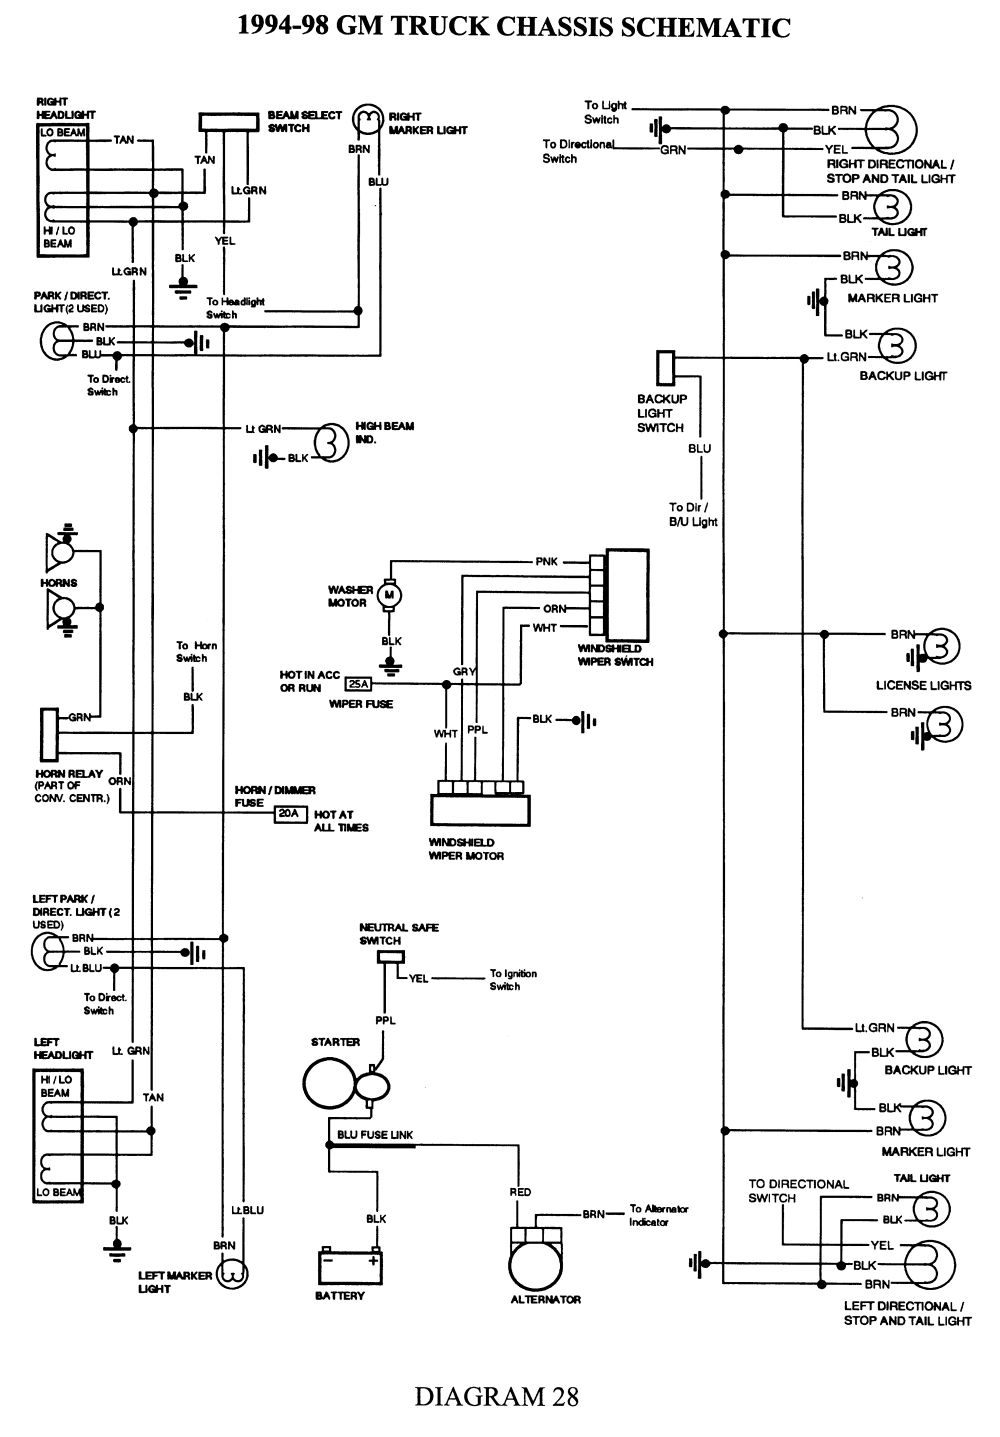 1995 Chevy Silverado Trailer Wiring Diagram Sample